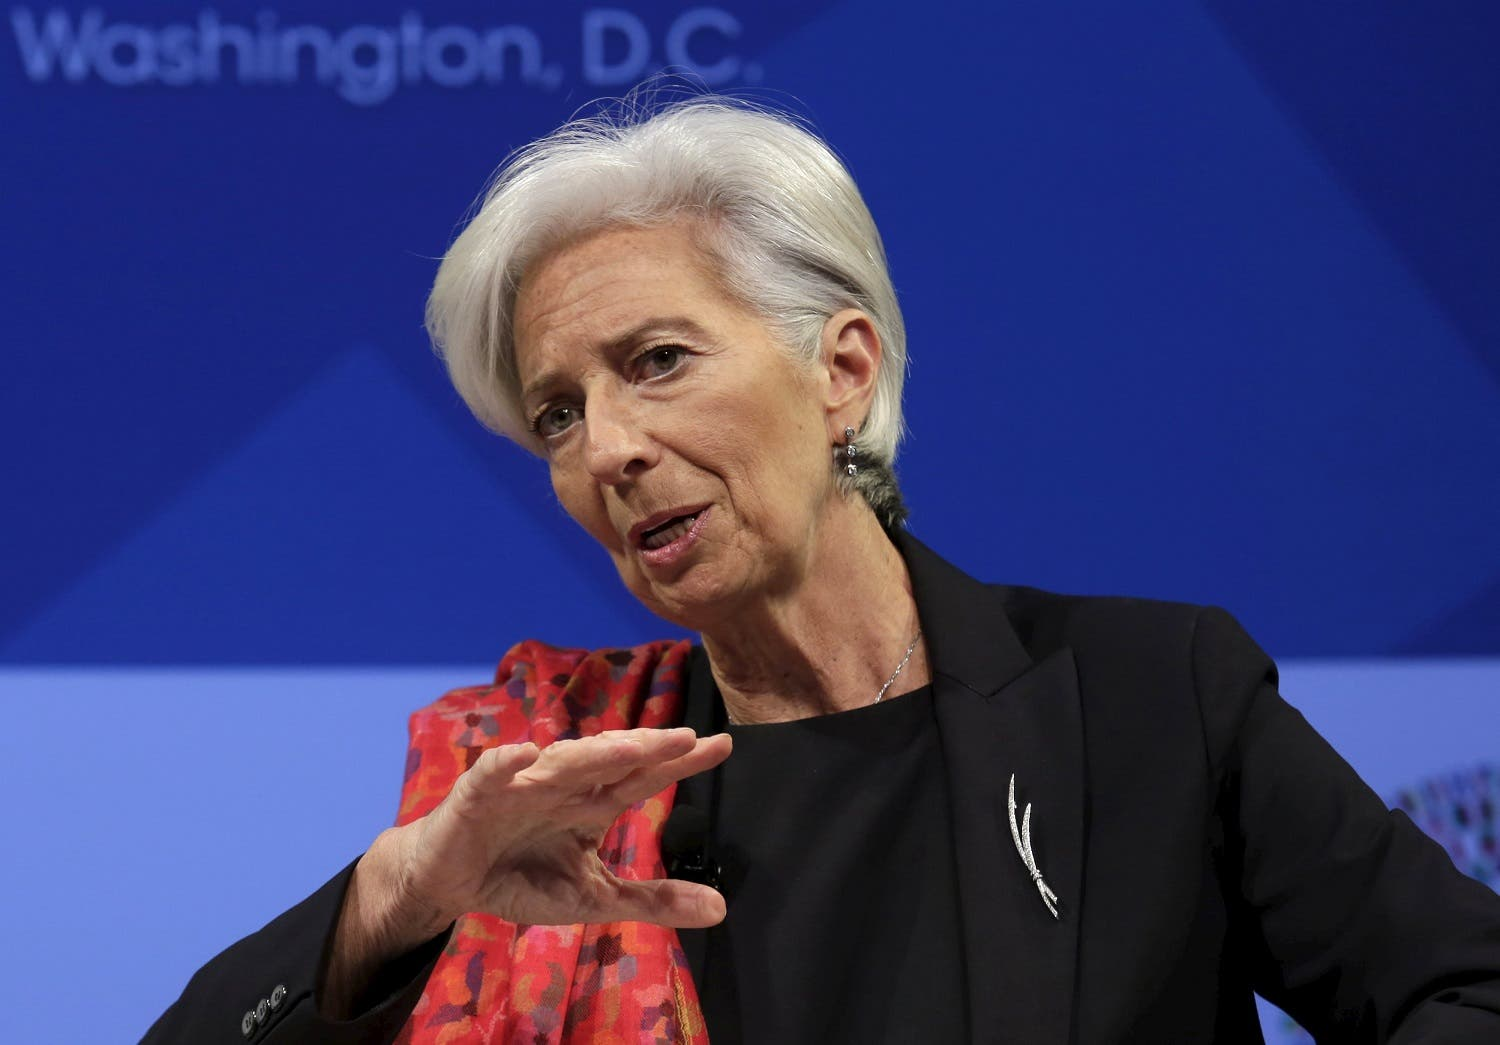 IMF Managing Director Christine Lagarde speaks at a refugee crisis panel in advance of the IMF/World Bank spring meetings in Washington. (Reuters)